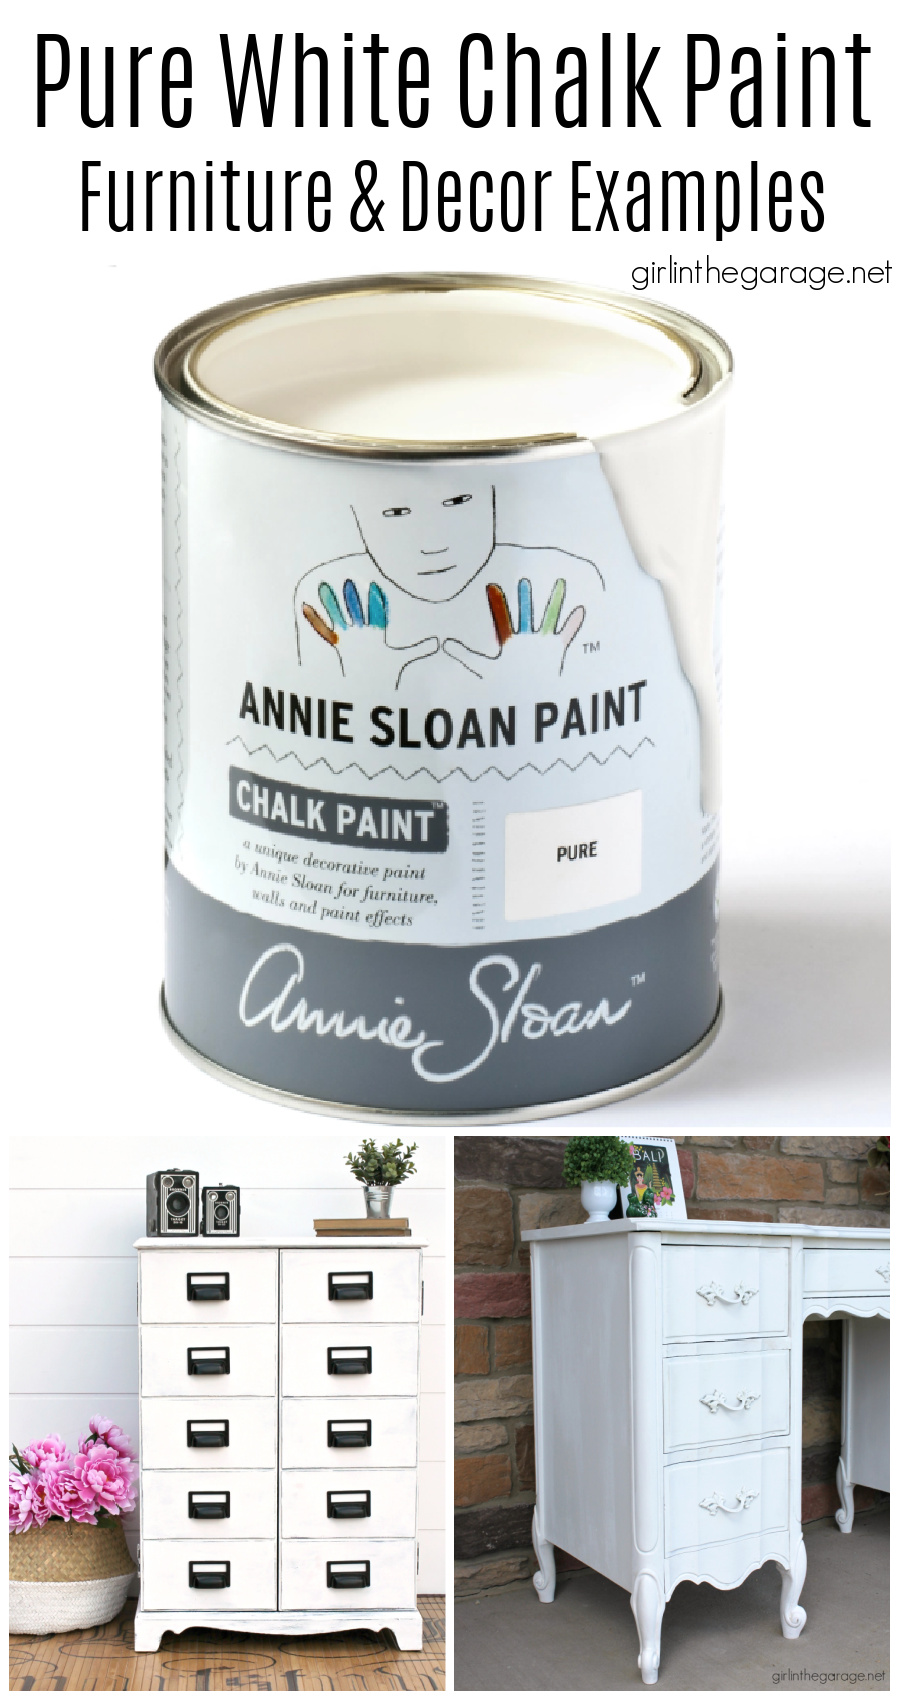 Pure White Chalk Paint Furniture Ideas Girl In The Garage